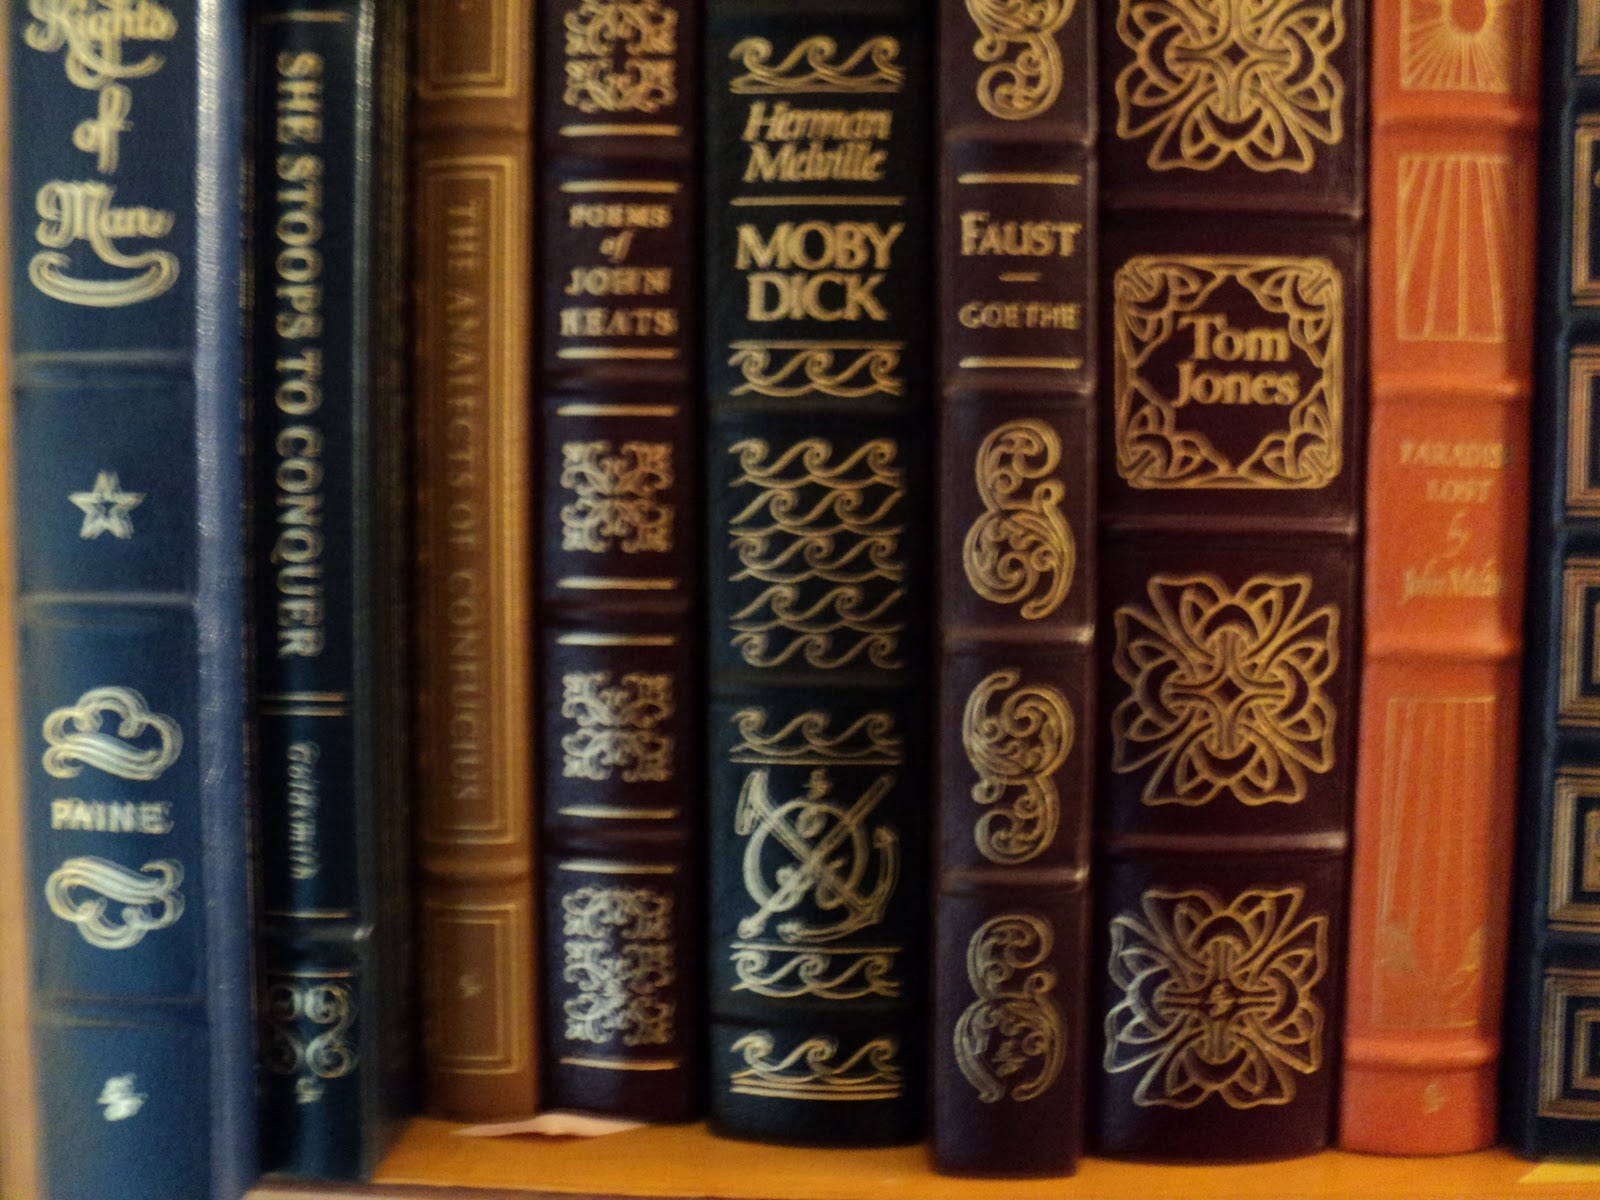 the of blog leatherbound classics john milton paradise lost leatherbound classics john milton paradise lost